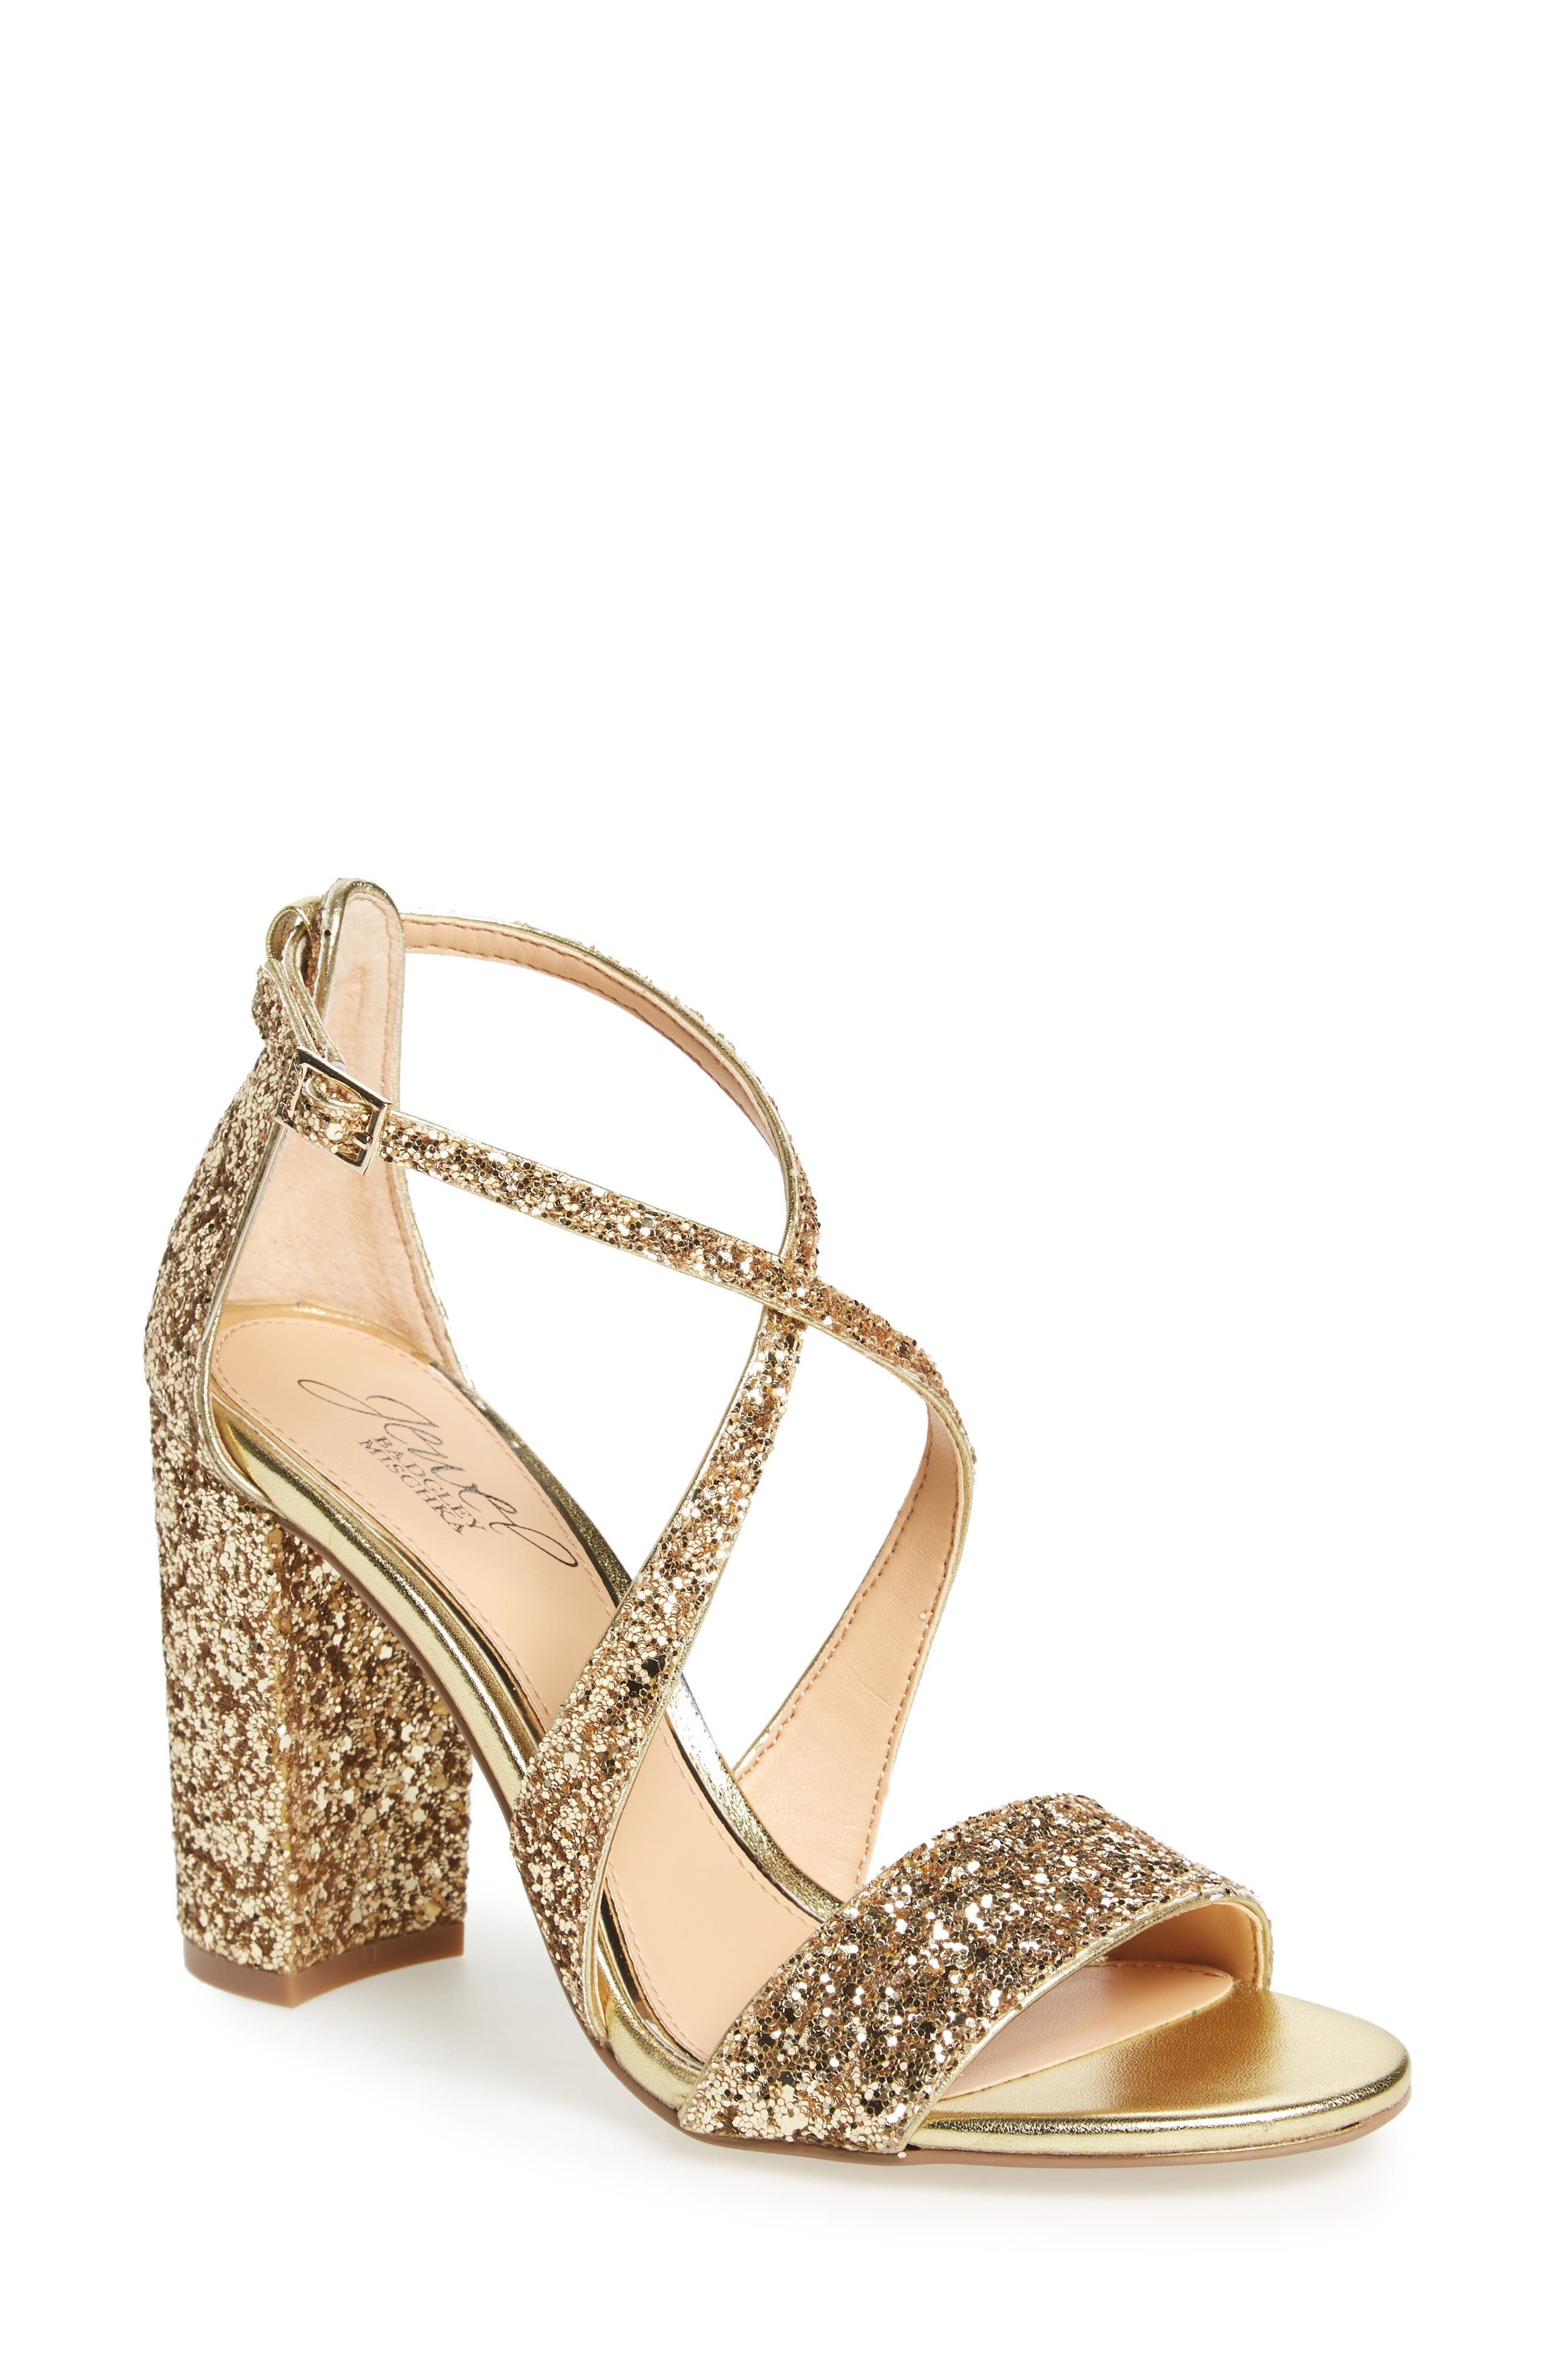 Cook Block Heel Glitter Sandal,                             Main thumbnail 1, color,                             Gold Leather